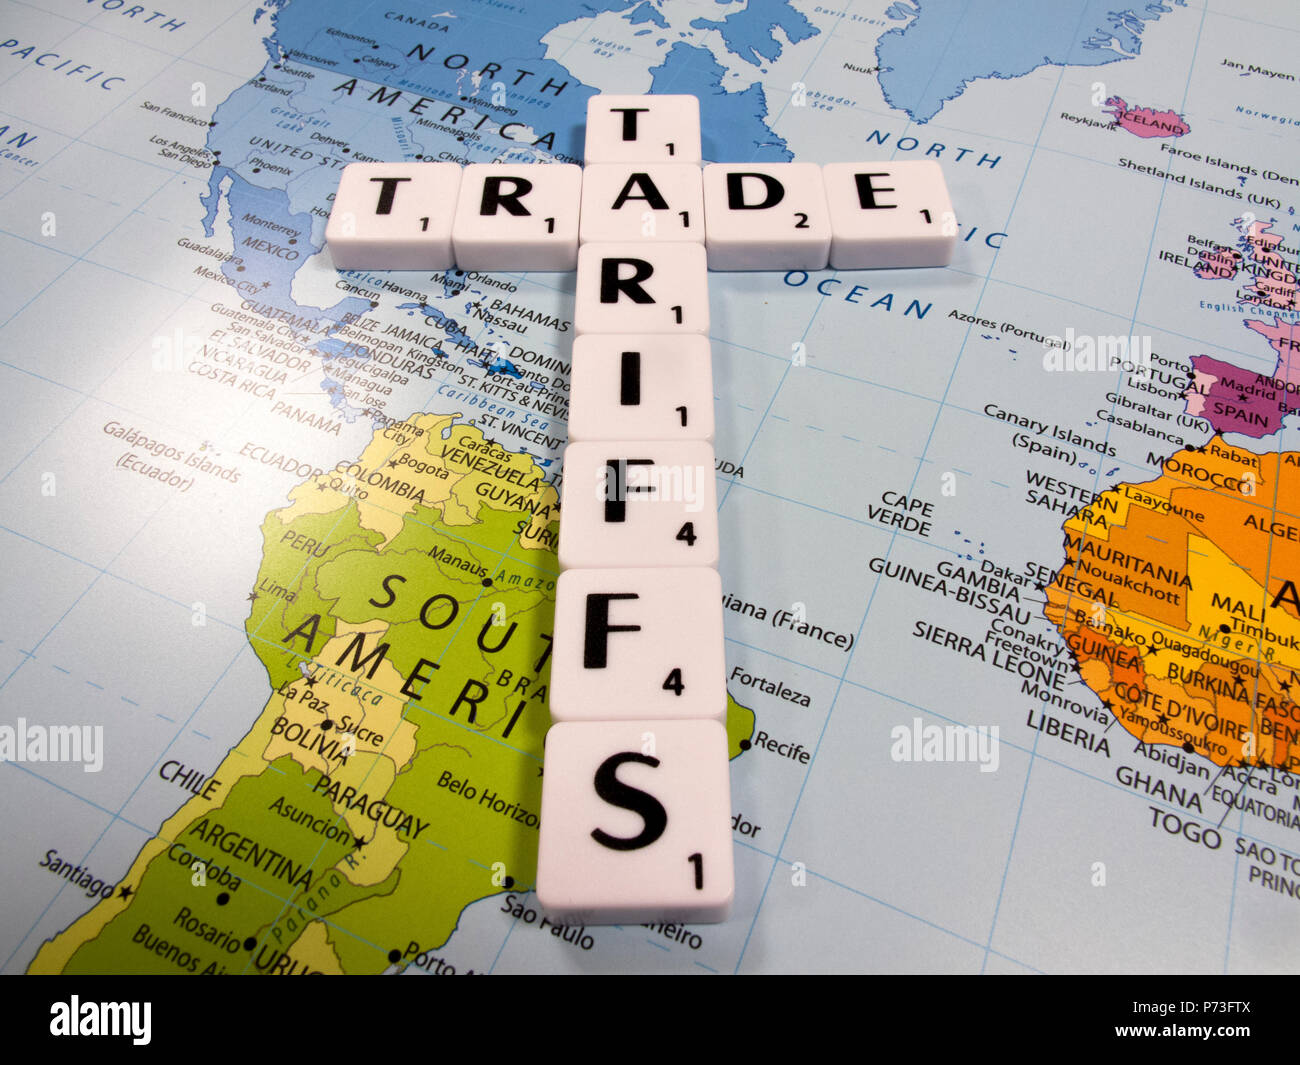 representation of trade tariffs imposed by the United States of